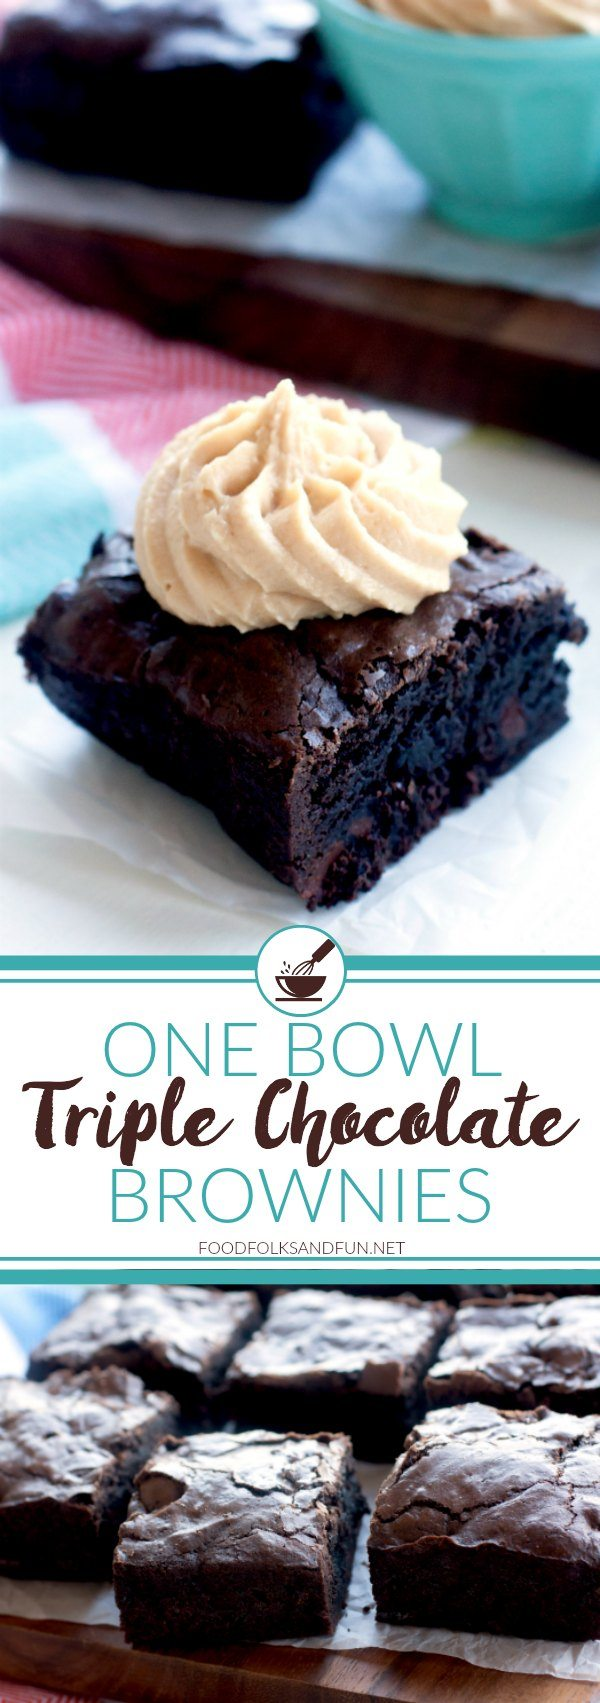 These Triple Chocolate One Bowl Brownies are rich, fudgy, and so incredibly easy to make! One bowl is all it takes to make this kitchen staple! via @foodfolksandfun